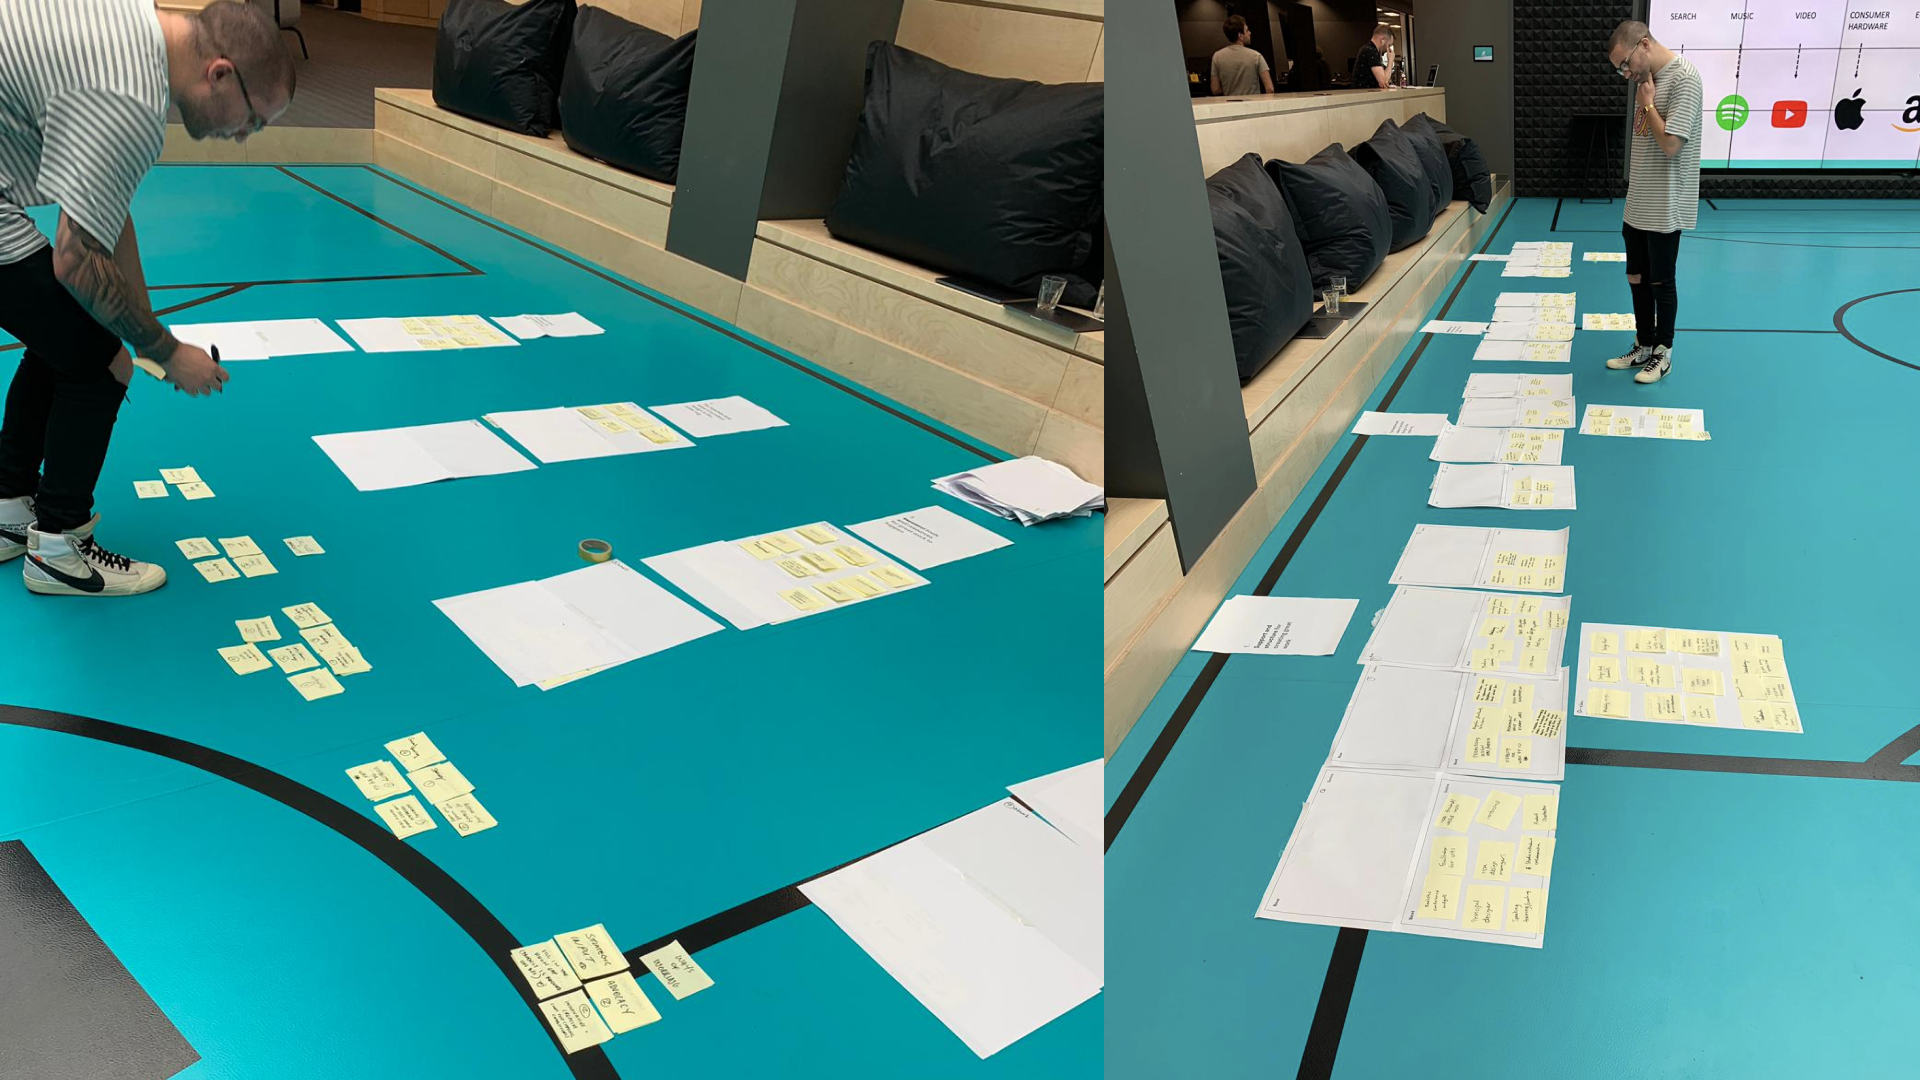 A person analysing a bunch of post-its, on the floor. Because why not.